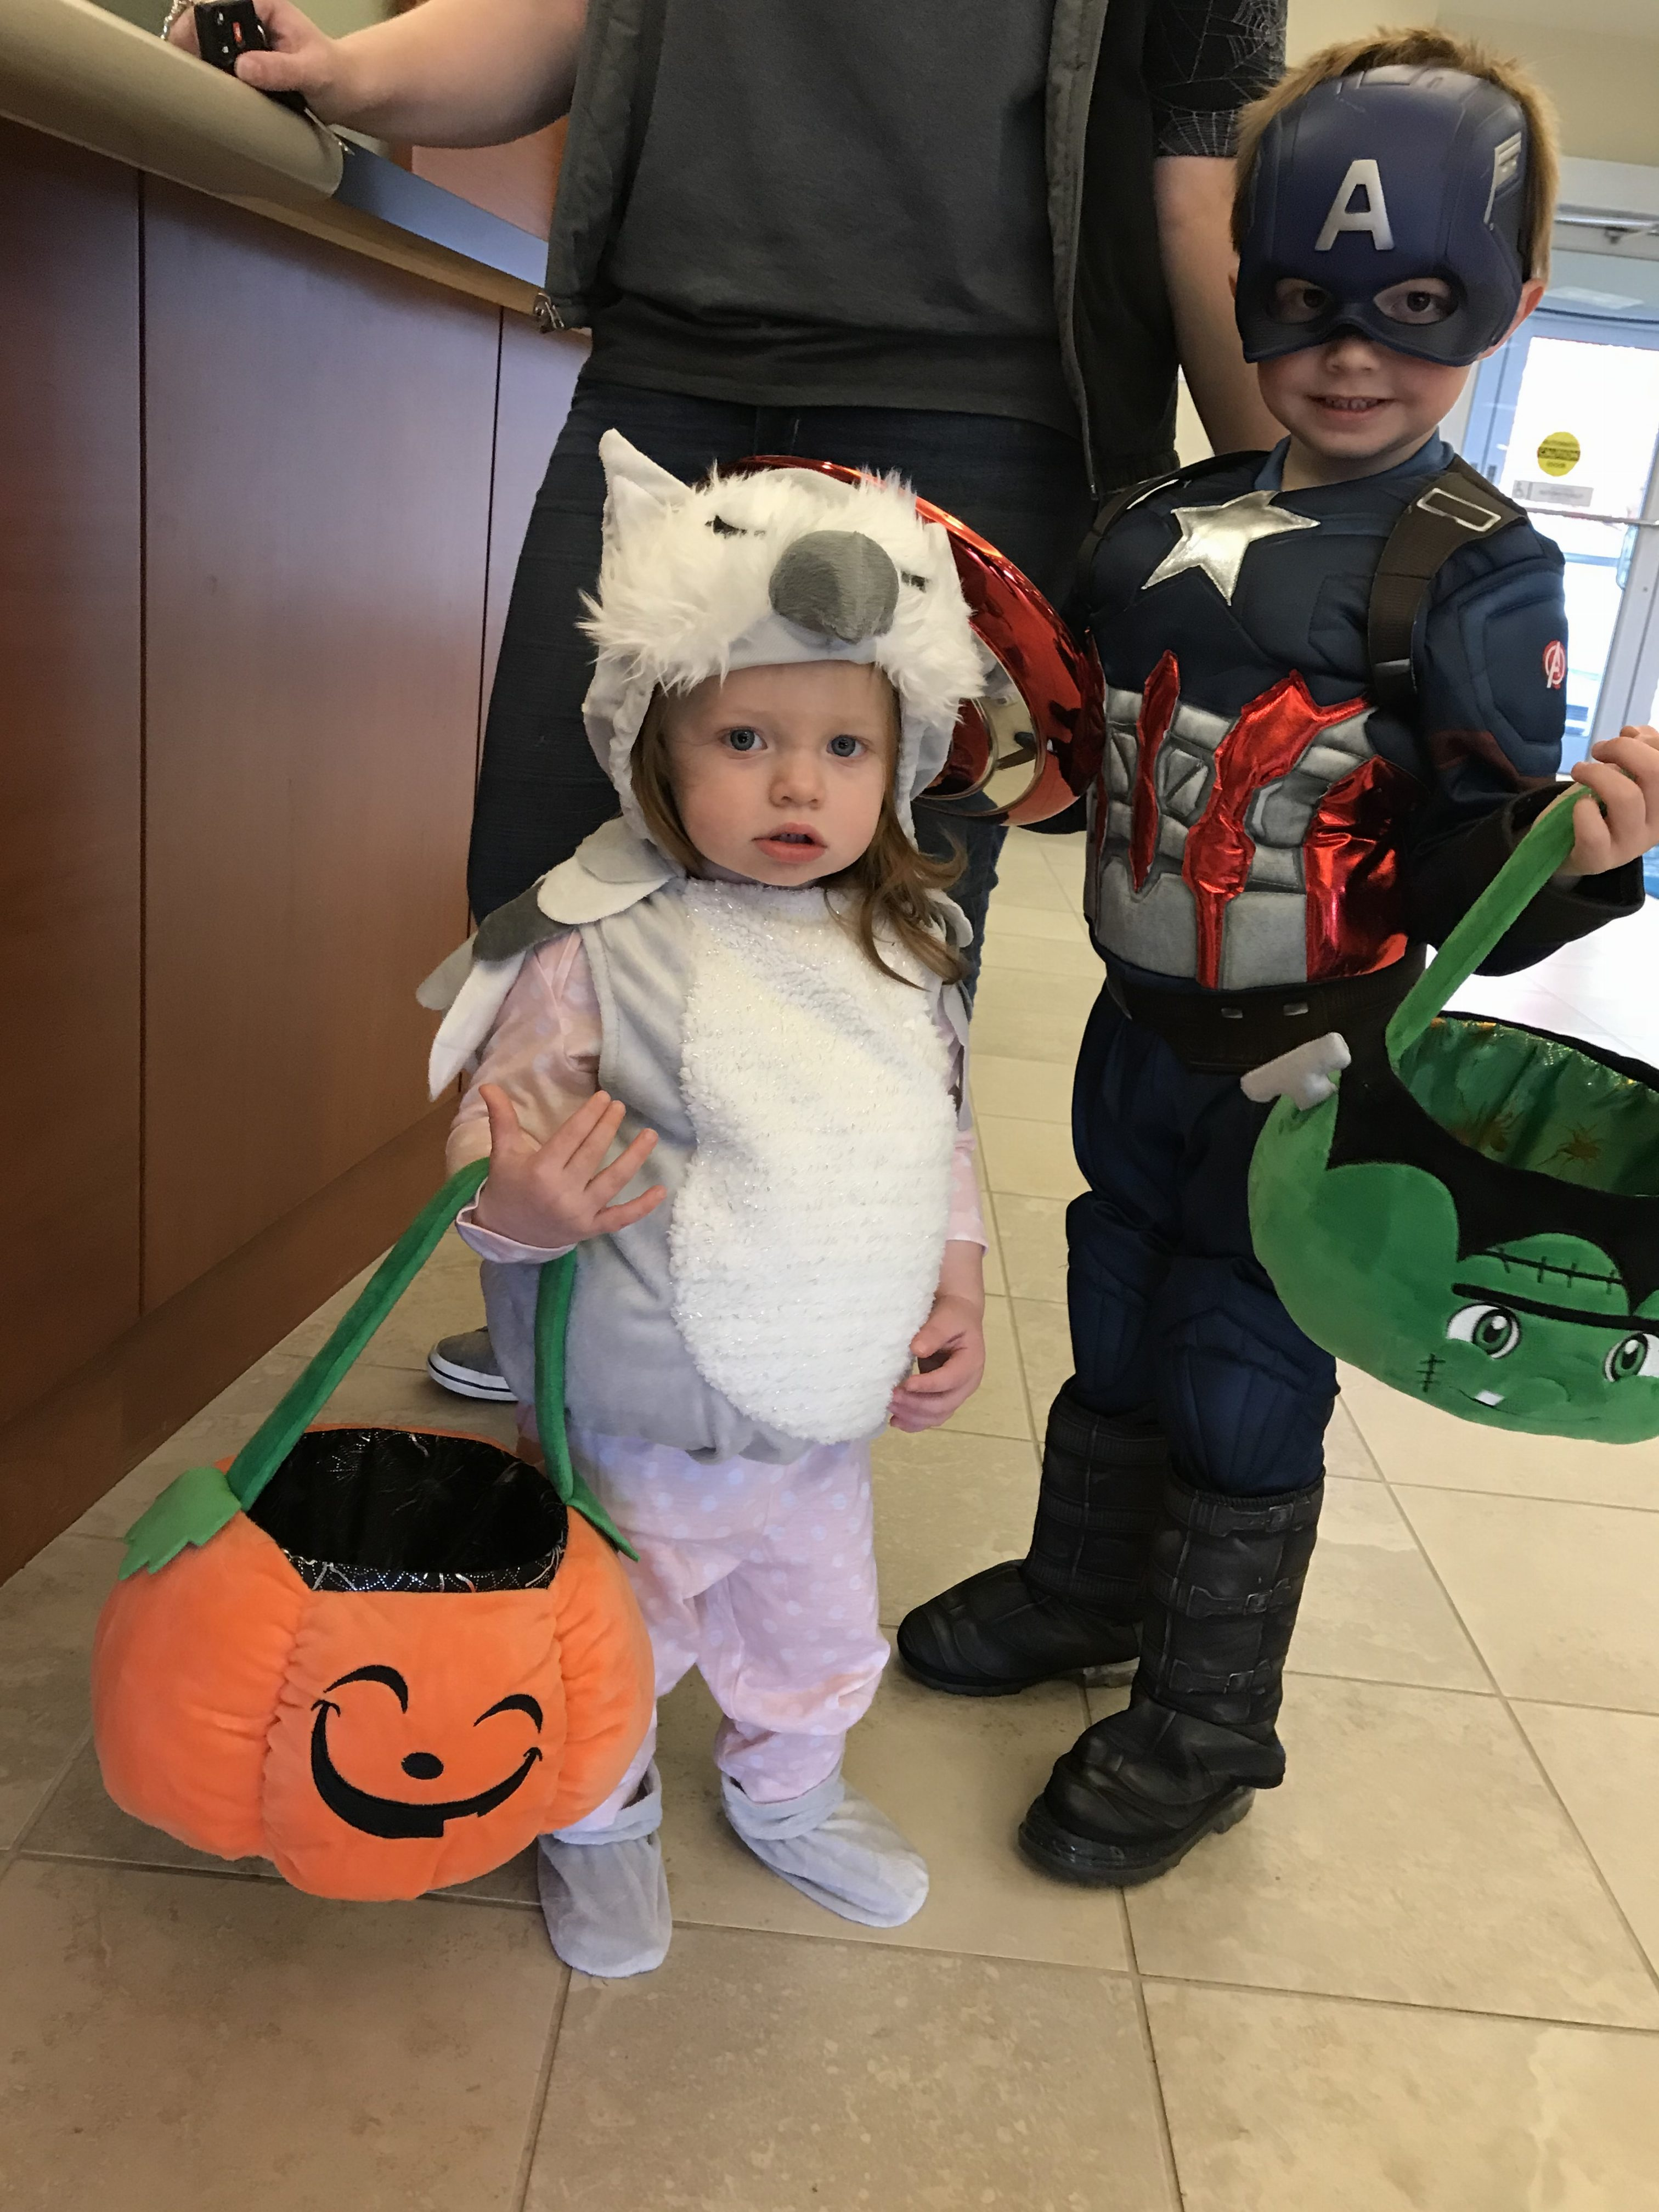 Kids dressed in costumes with Halloween buckets